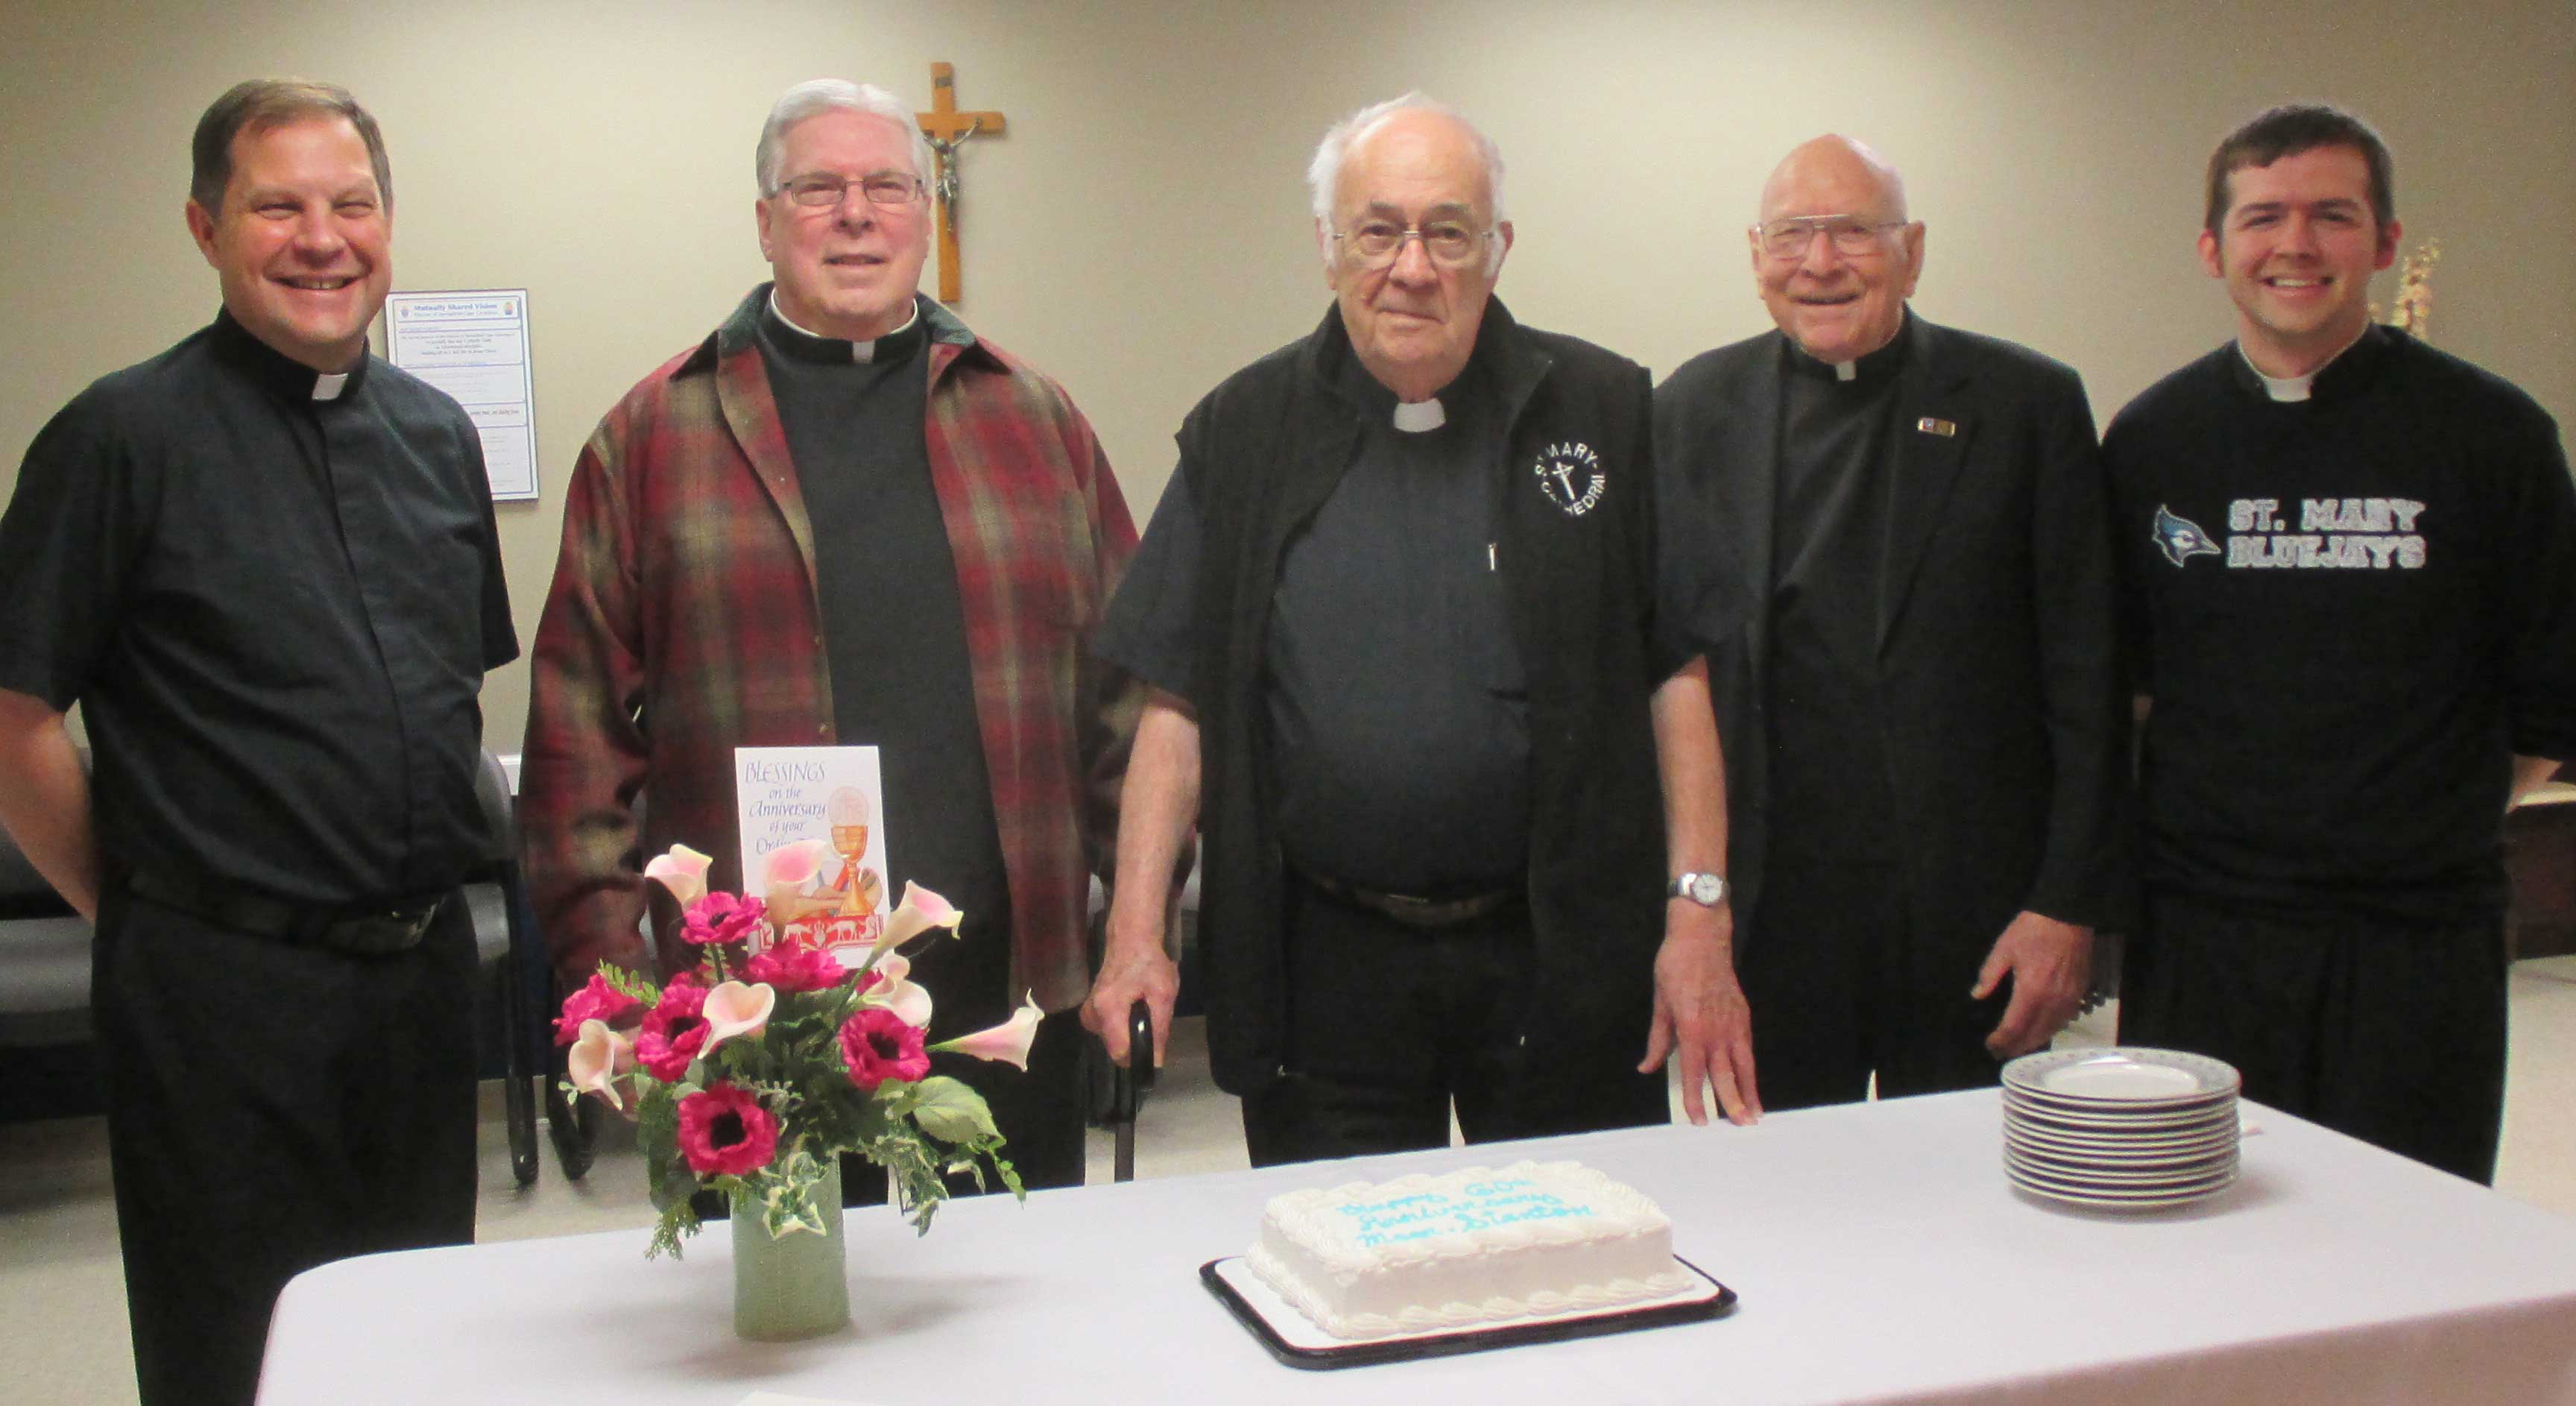 60th ANNIVERSARY—The staff at St. Mary of the Annunciation Cathedral held a luncheon in honor of Msgr. William Stanton's 60th Anniversary as a priest March 18, 2016, in the parish hall. Pictured were Fr. Allan Saunders, pastor; Fr. Normand Varone, retired; Msgr. William Stanton, retired; Msgr. Richard Rolwing, retired; and Fr. Joseph Kelly, associate pastor. Msgr. Stanton is a classmate of Bp.-Emeritus John J. Leibrecht who also graduated from Kenrick-Glennon Seminary in St. Louis on March 17, 1956. (Photo by Lisa Simmons)